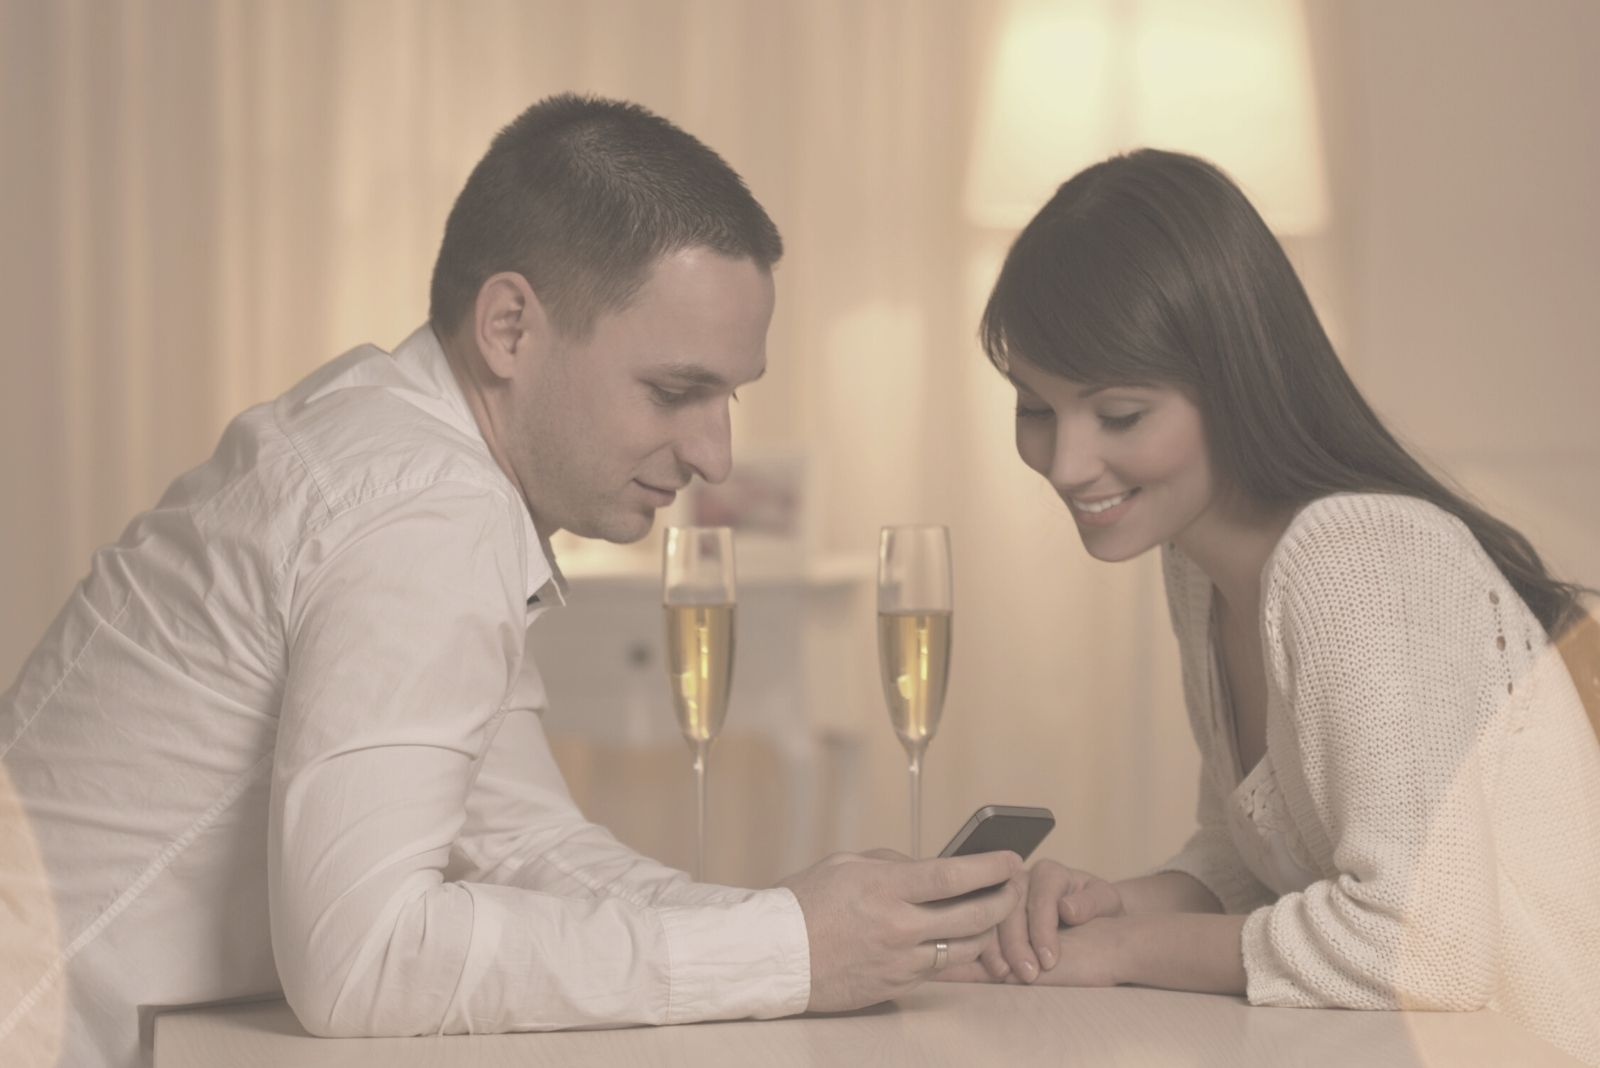 beautiful couple looking at the phone during their wine date night